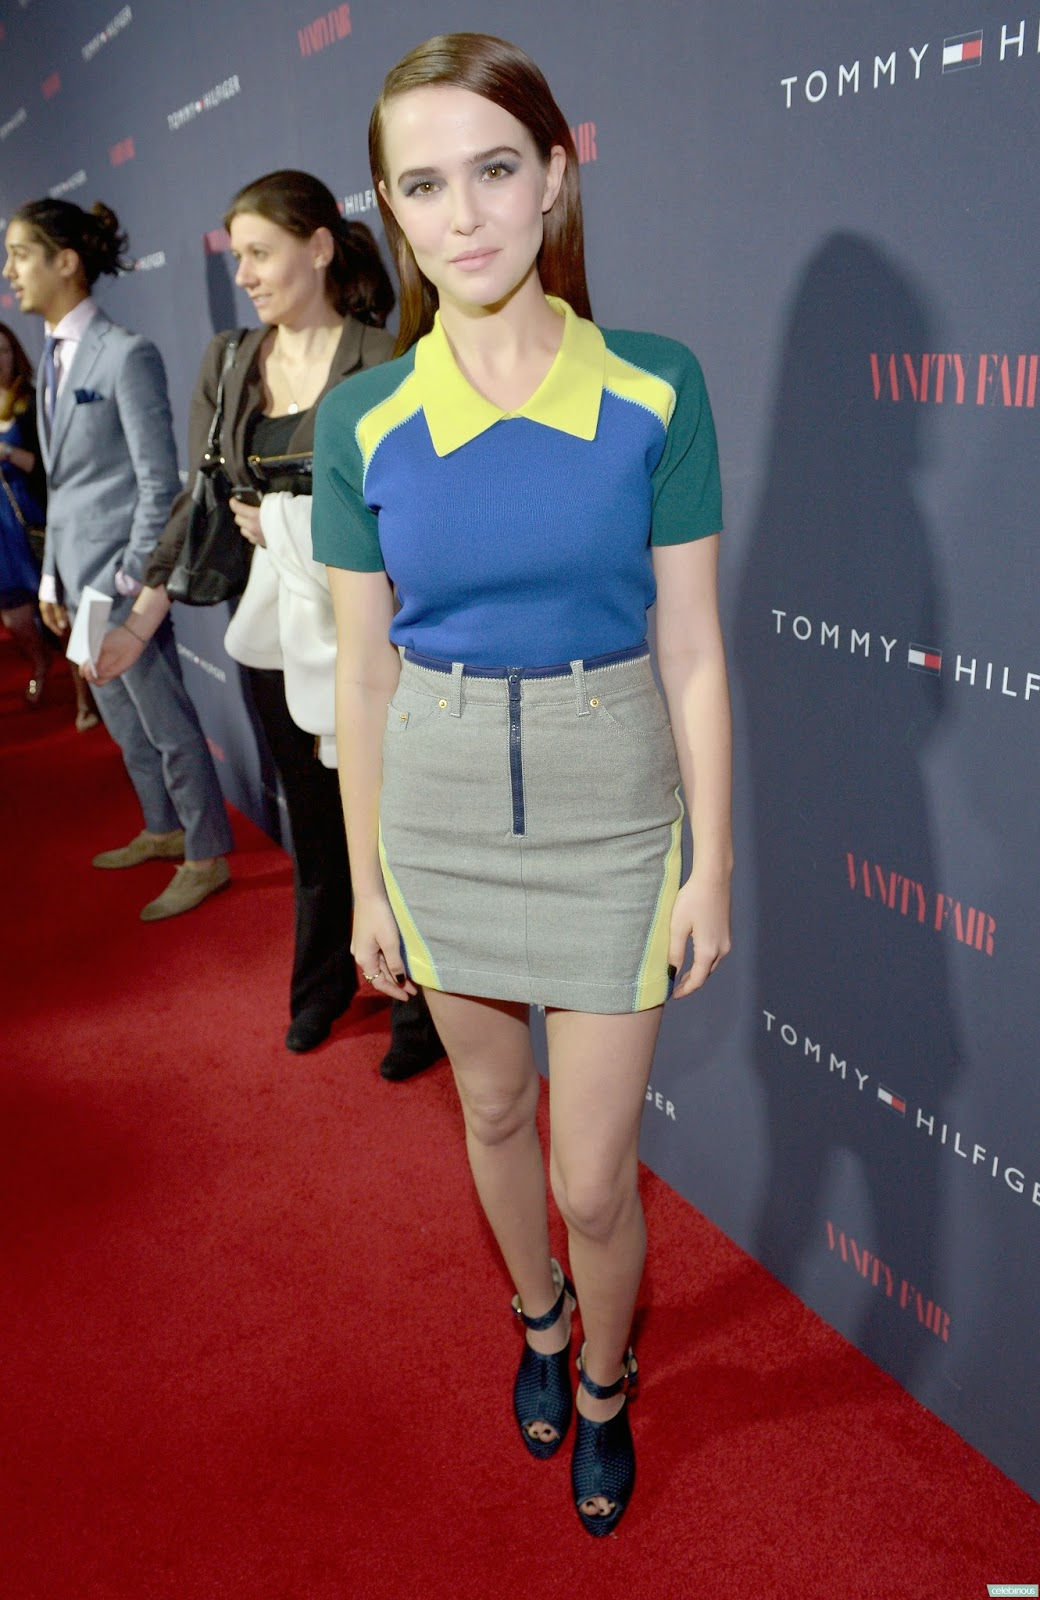 3efc2a565dbe Zoey wore a Tommy Hilfiger Spring 2014 Collection Top and Skirt and a pair  of Bionda Castana Christa Woven Sandals.